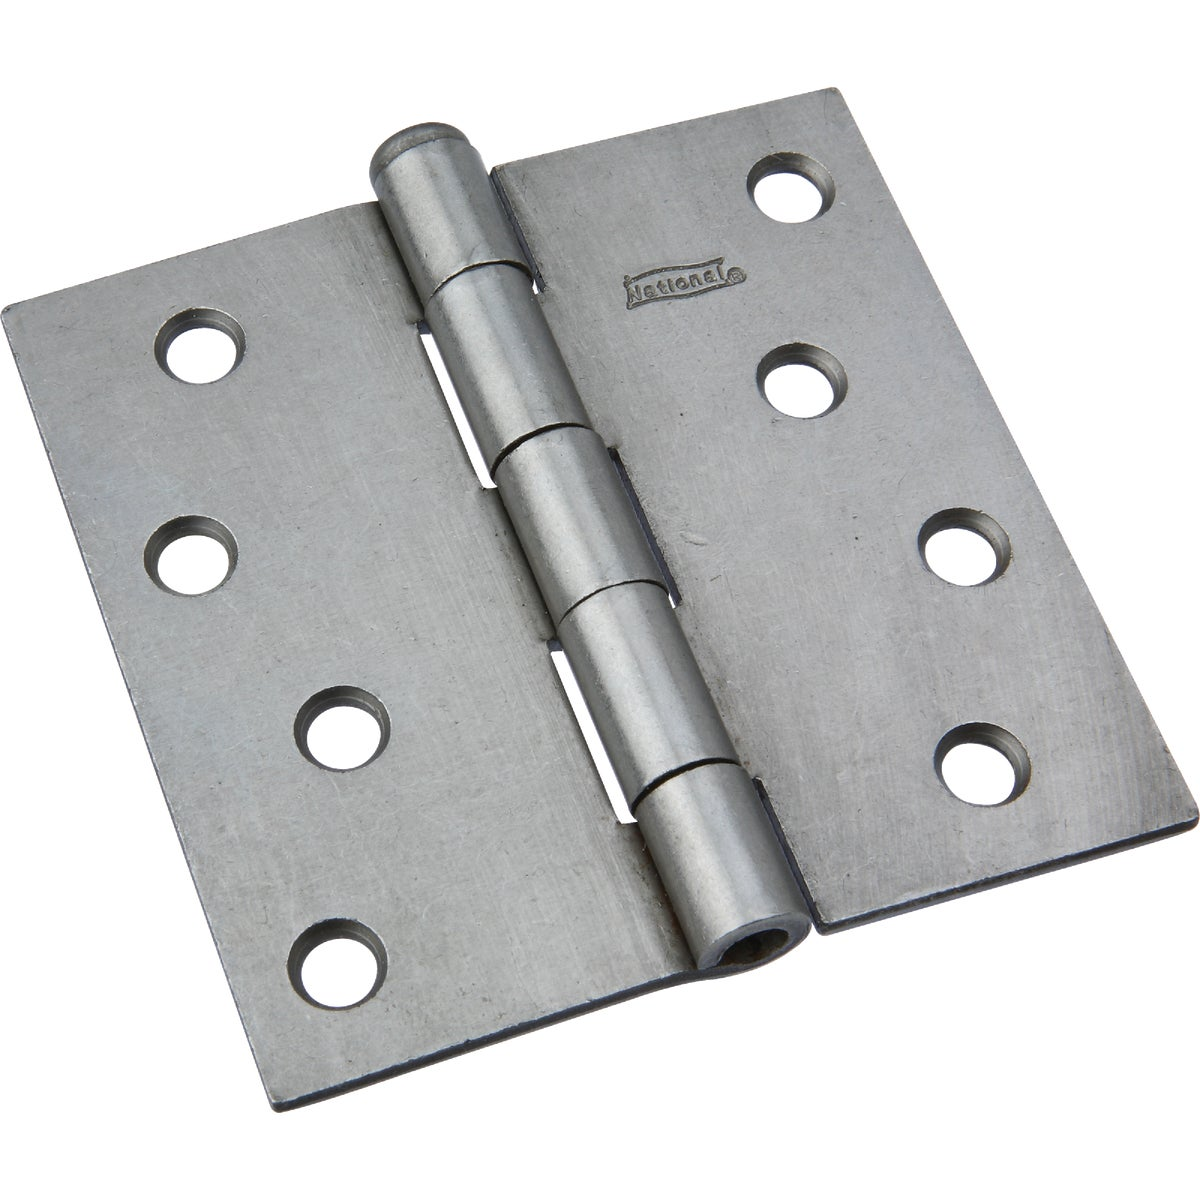 "4"" BROAD HINGE - N139998 by National Mfg Co"